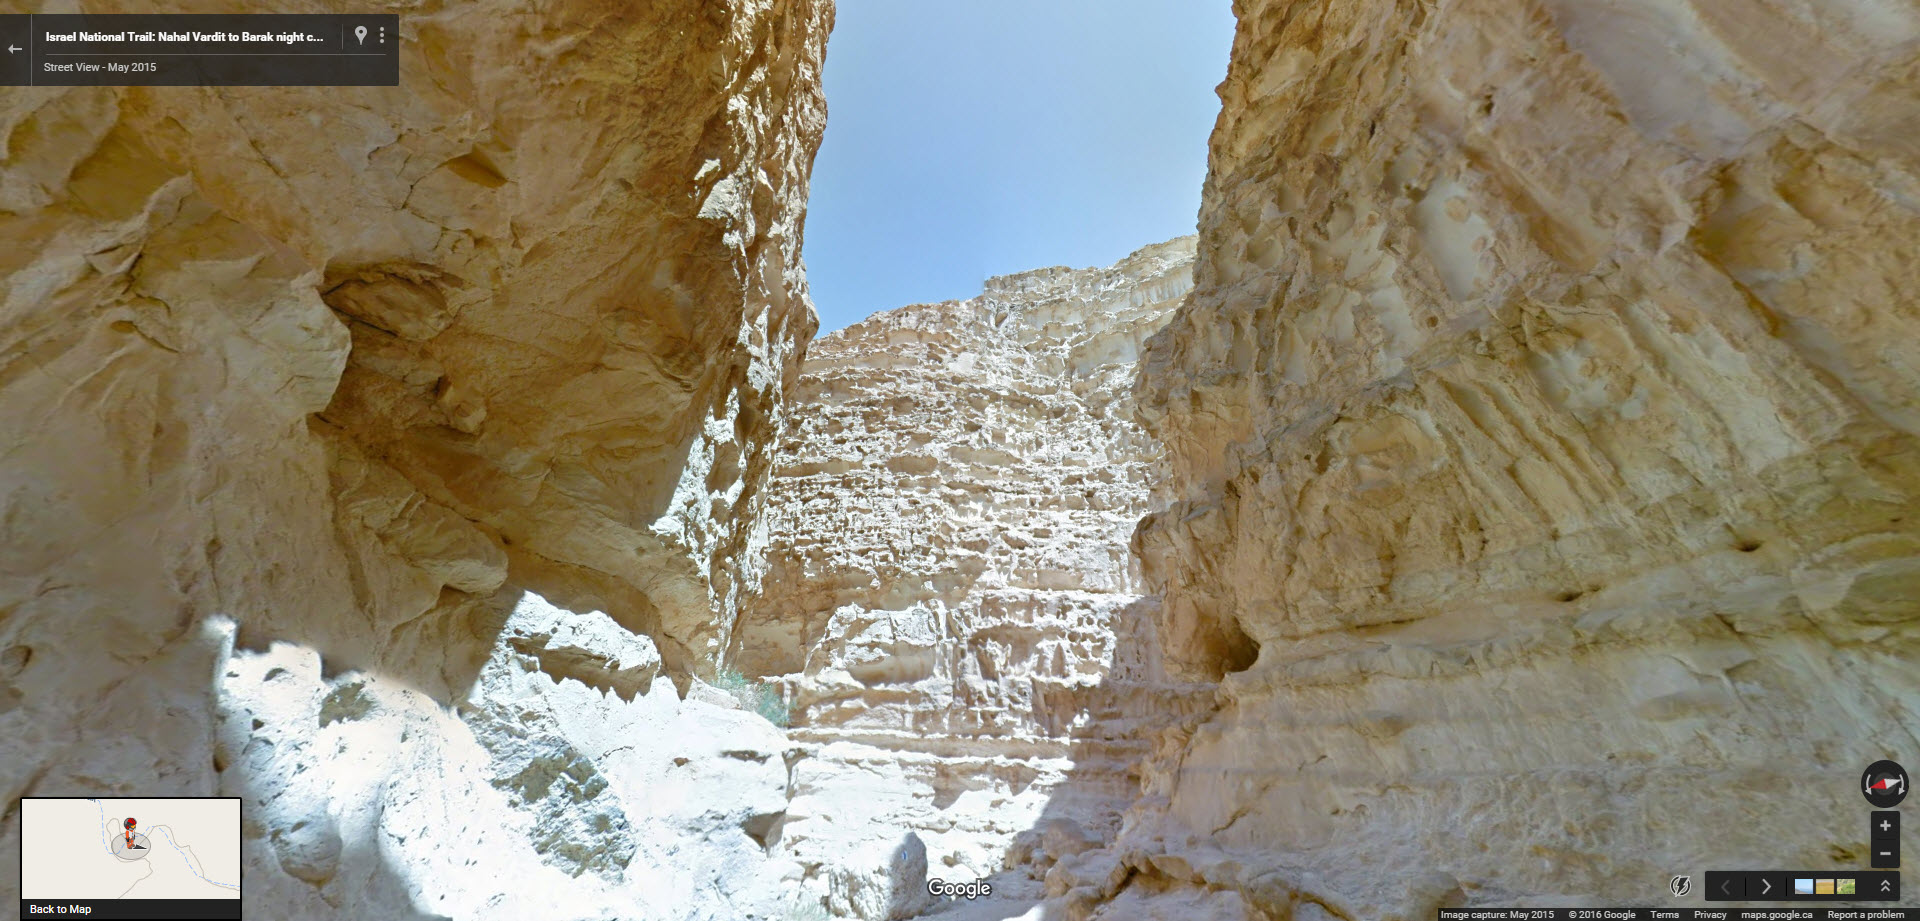 Take a hike across Israel with Google Street View